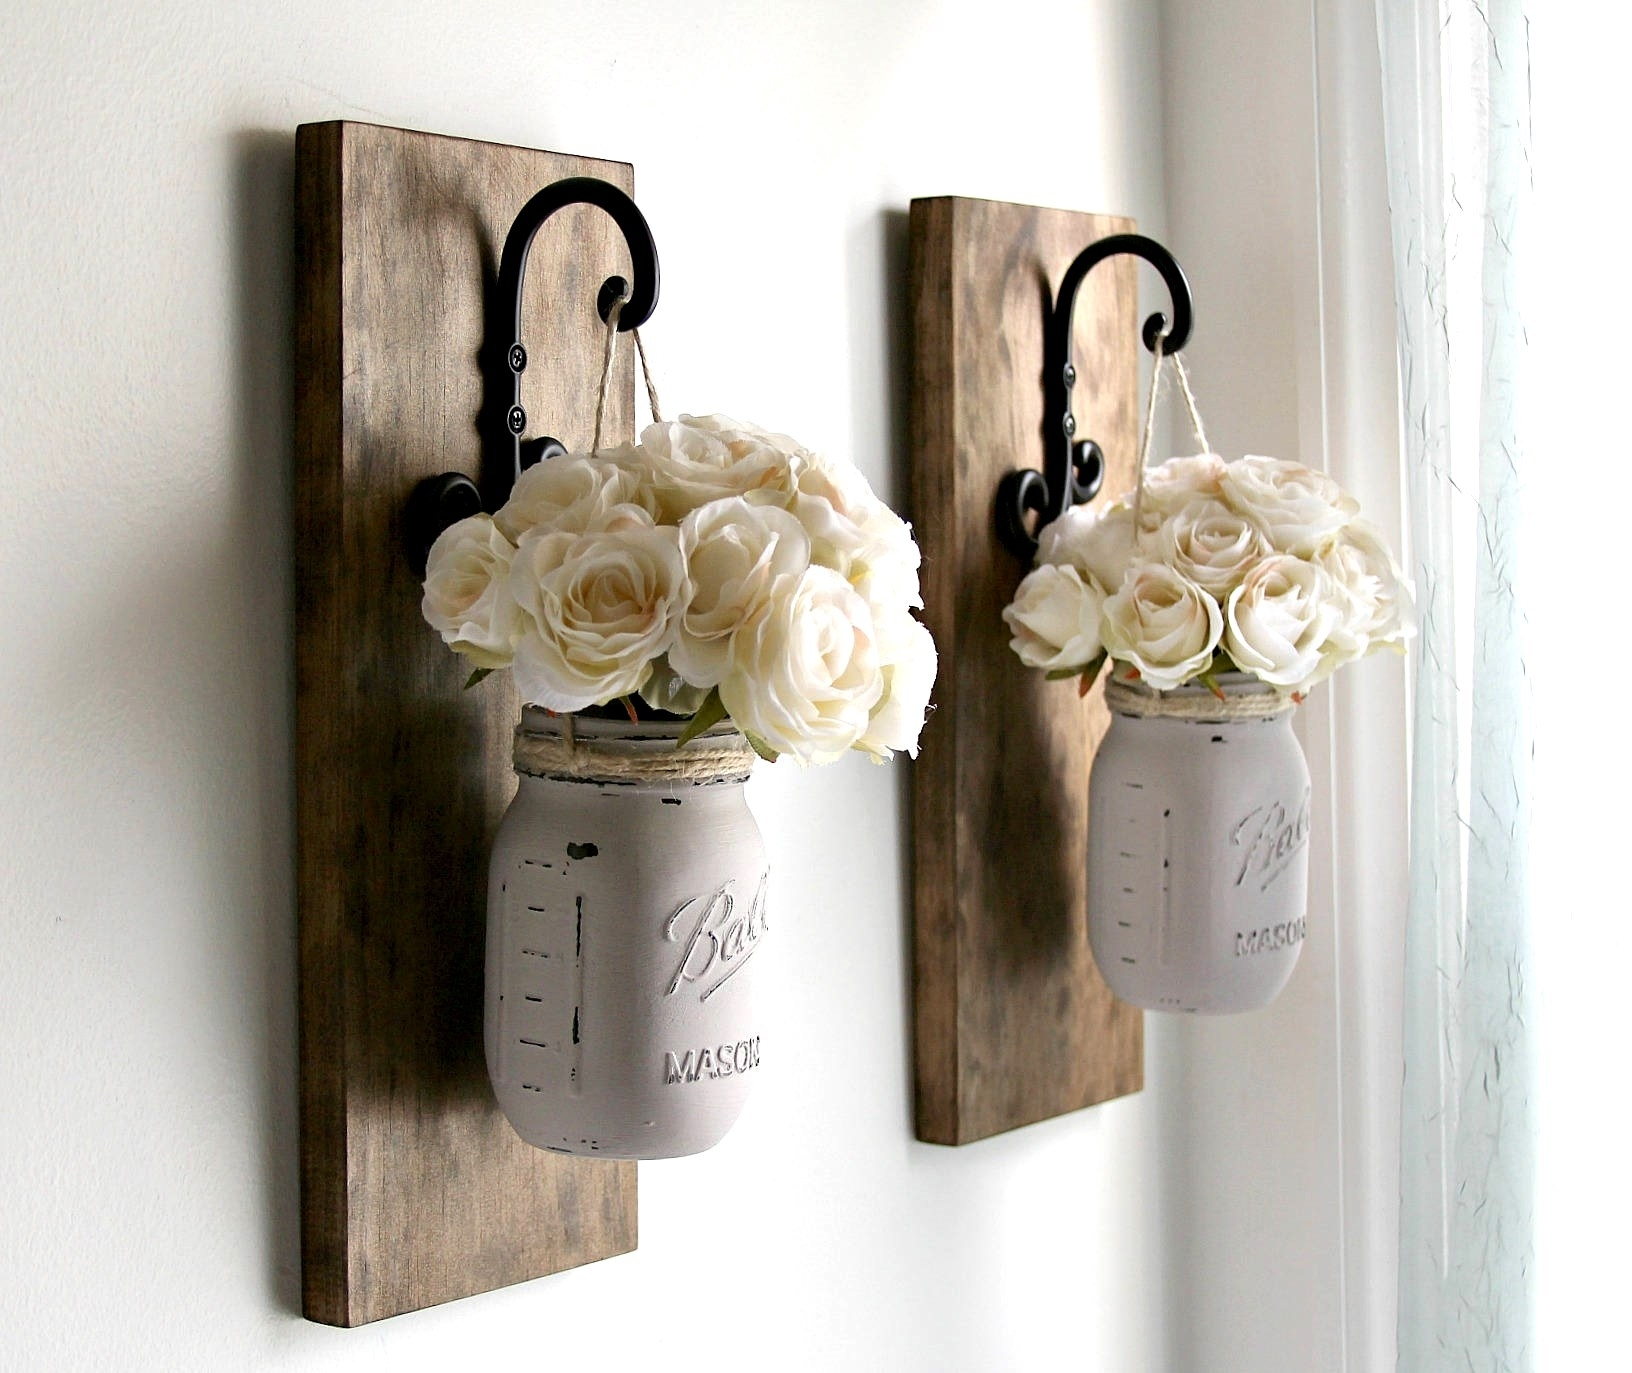 Rustic Sconces Rustic Wall Decor Mason Jars Sconce Farmhouse | Art Within Best And Newest Mason Jar Wall Art (View 12 of 20)